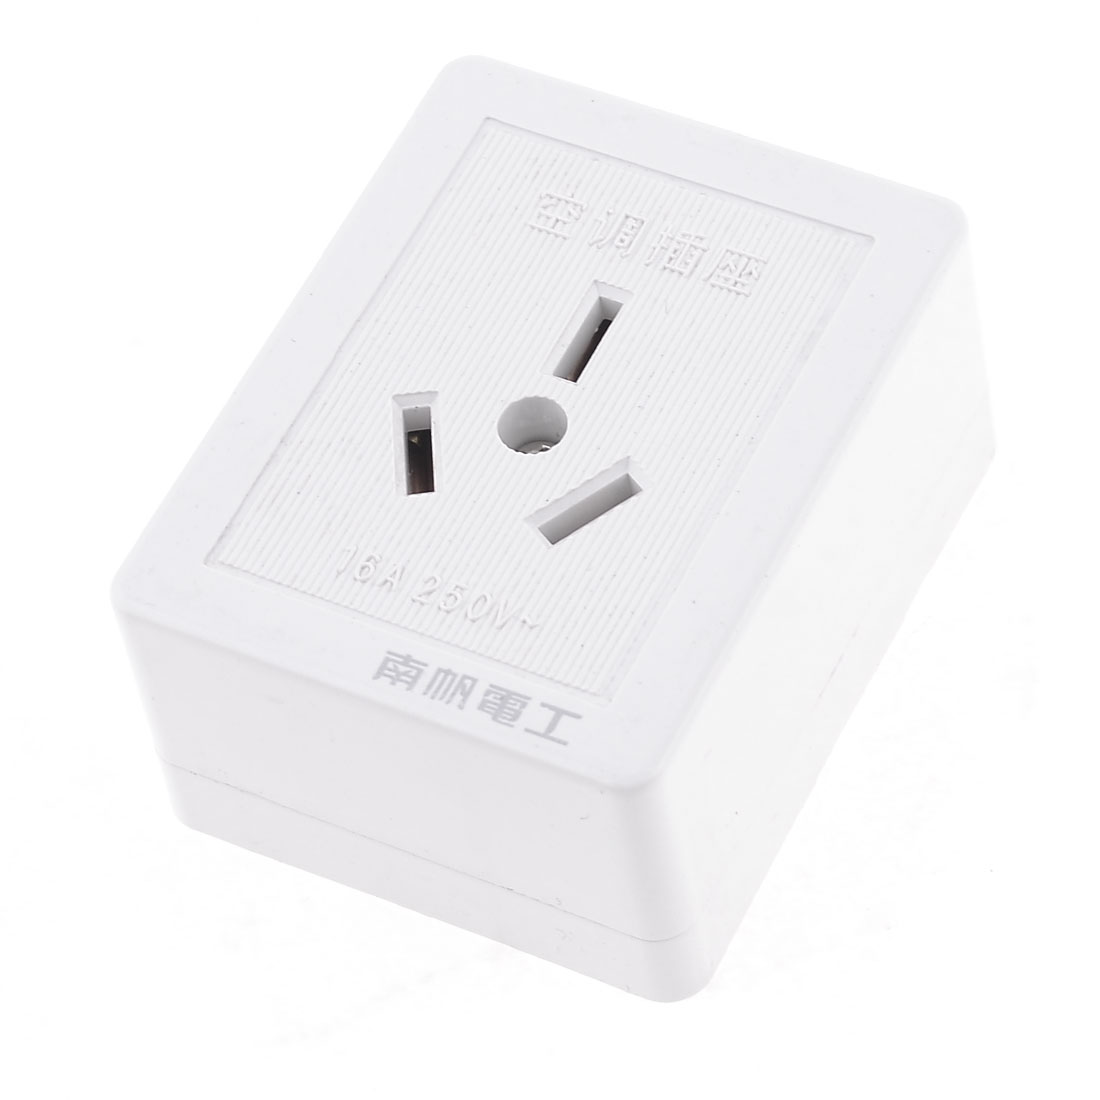 AU Plug Socket White Panel Home Air Condition Power Wall Plate AC 250V 16A